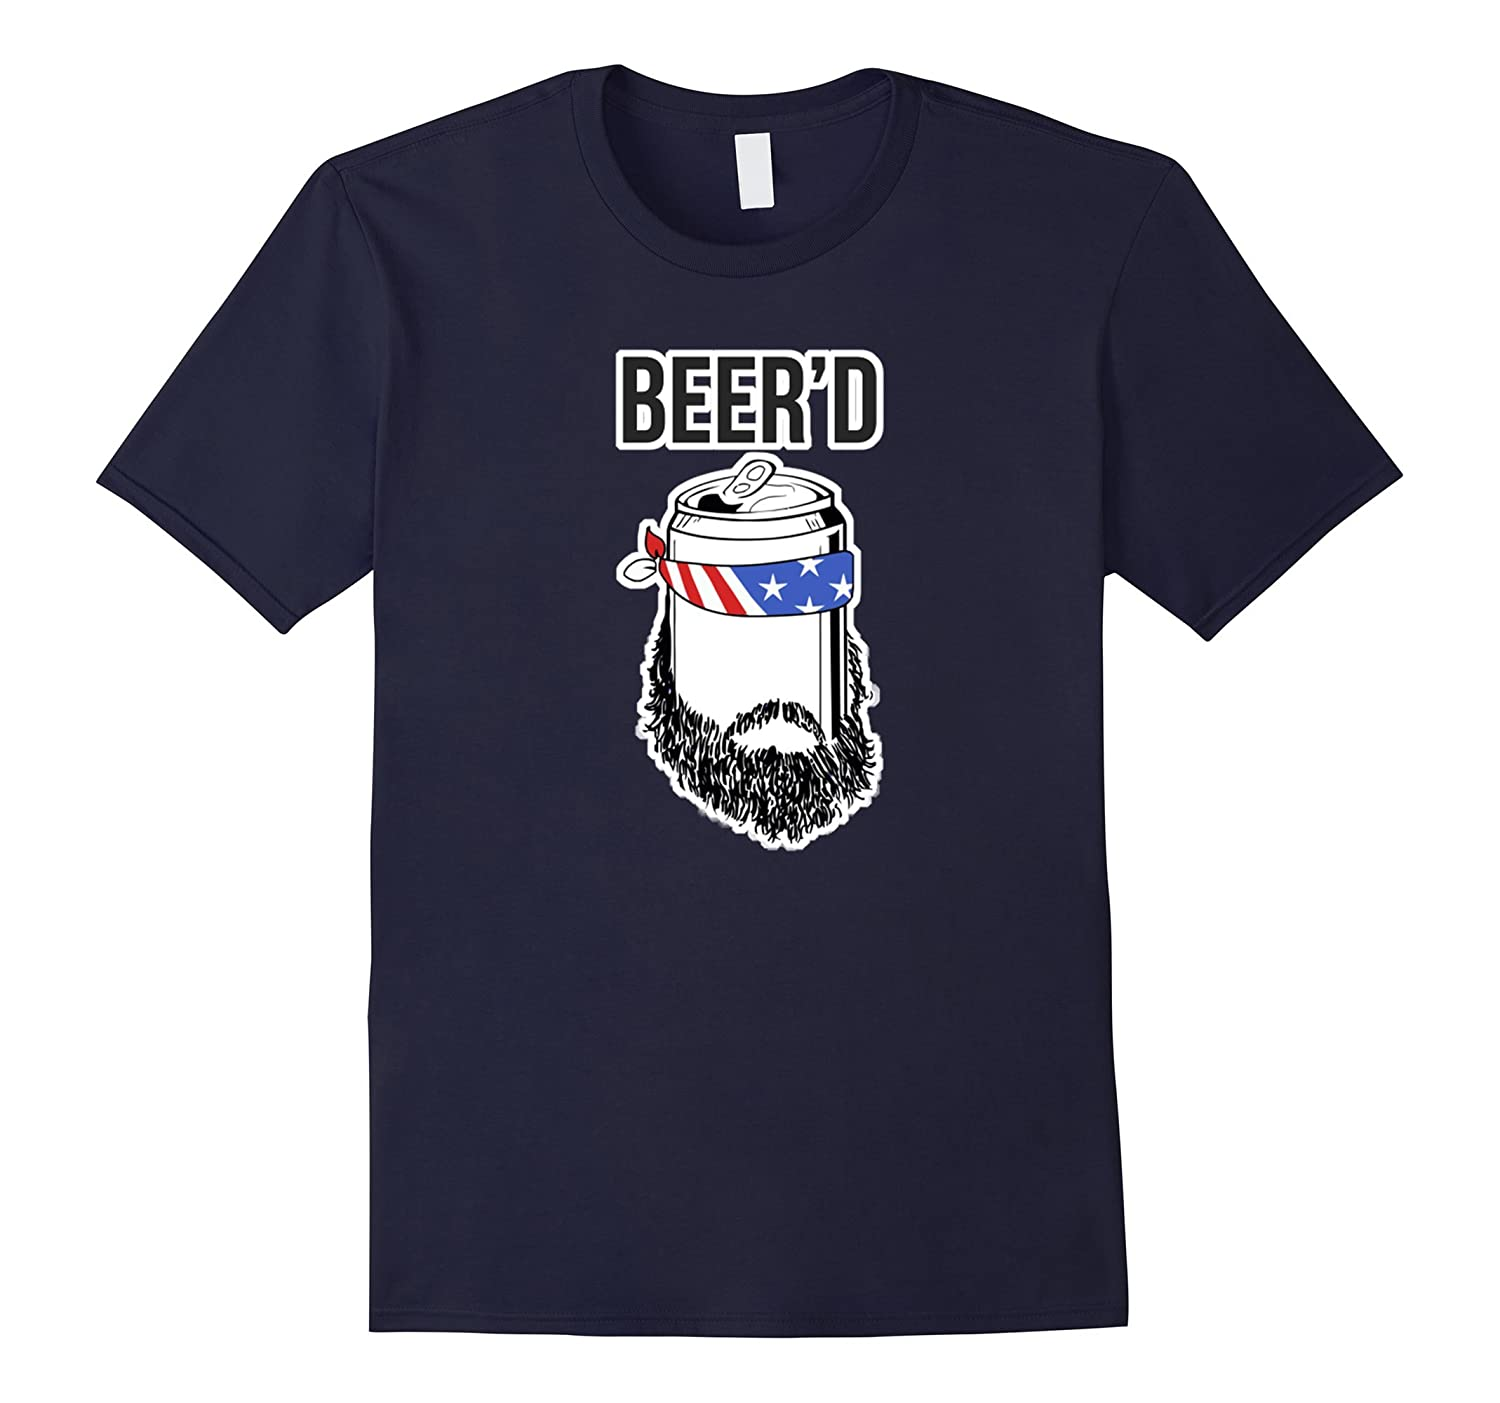 Beer'd Shirt Funny Beer Beard Guy American Flag Gift